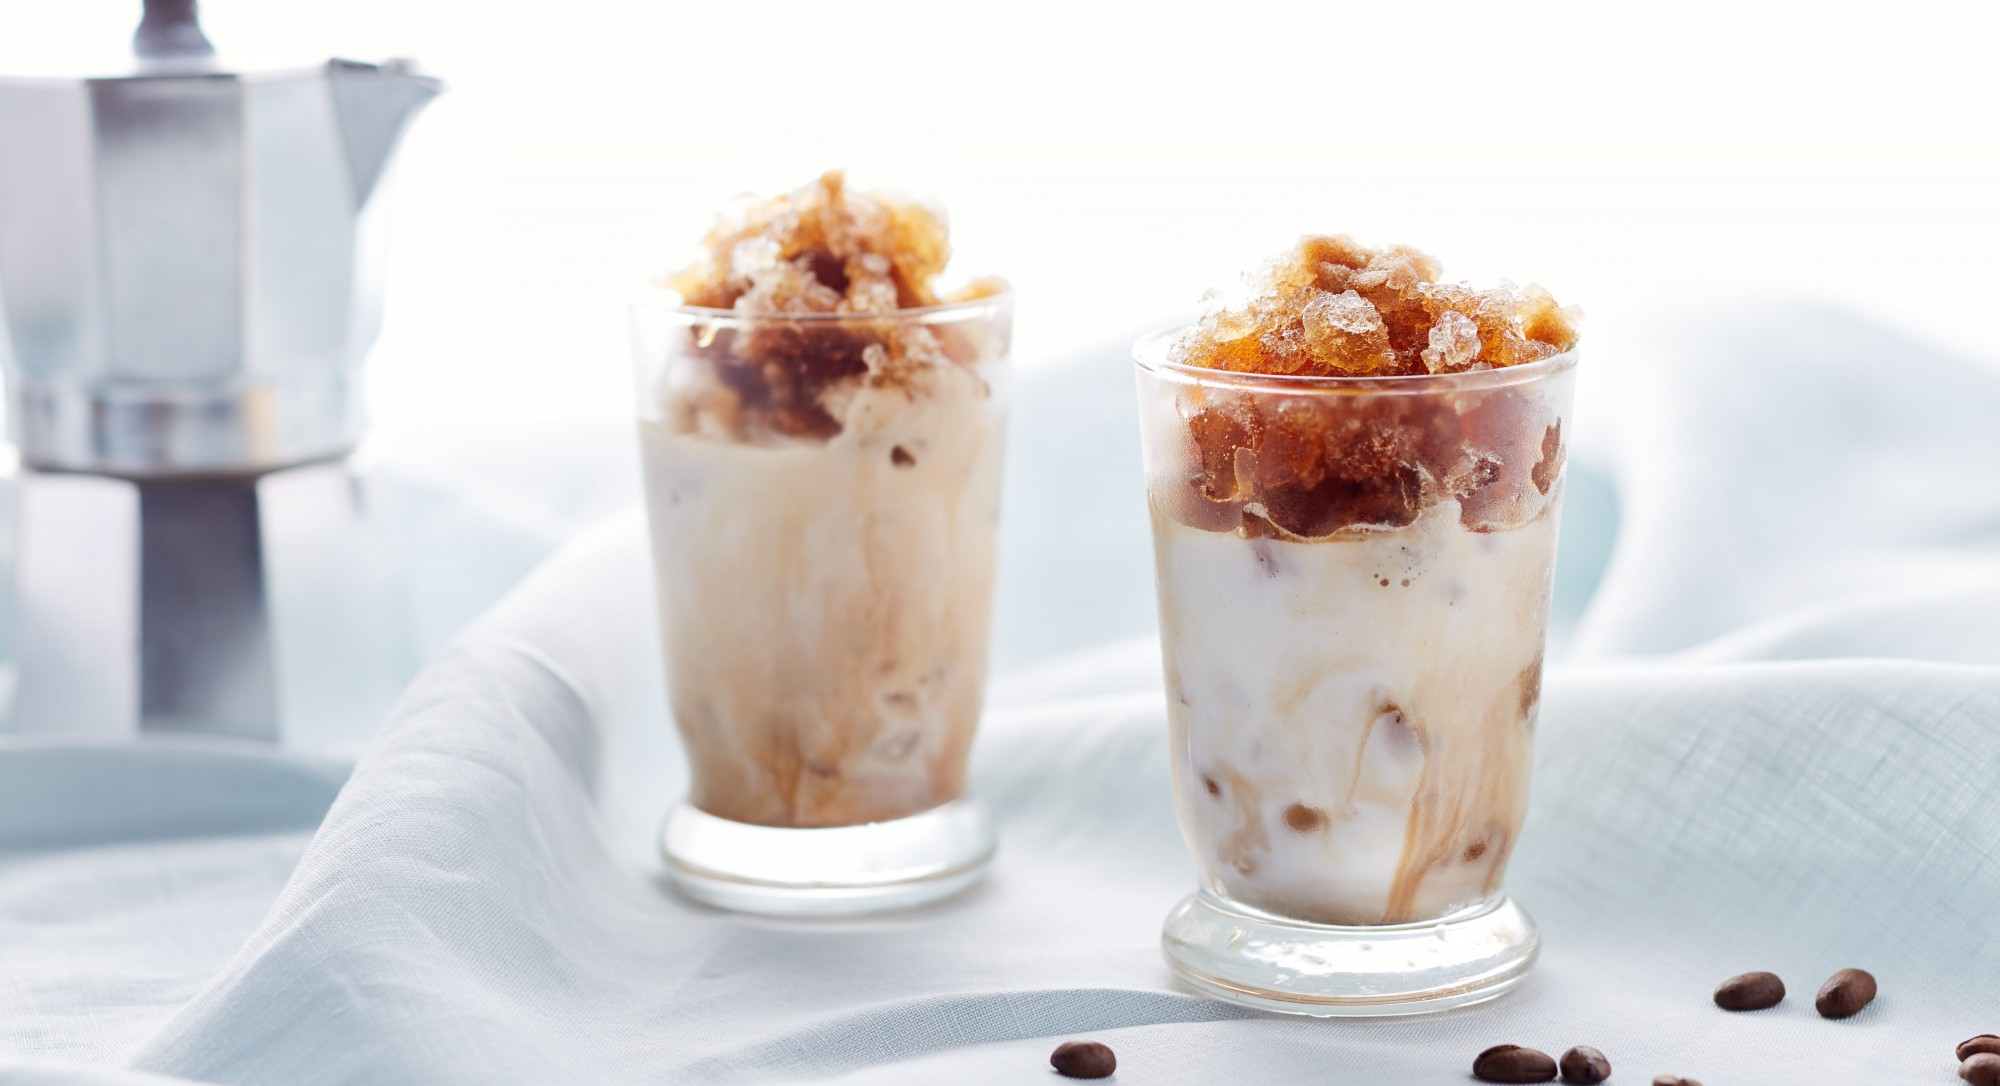 Love Caffeine AND Slushies? The Espresso Granita Is for You